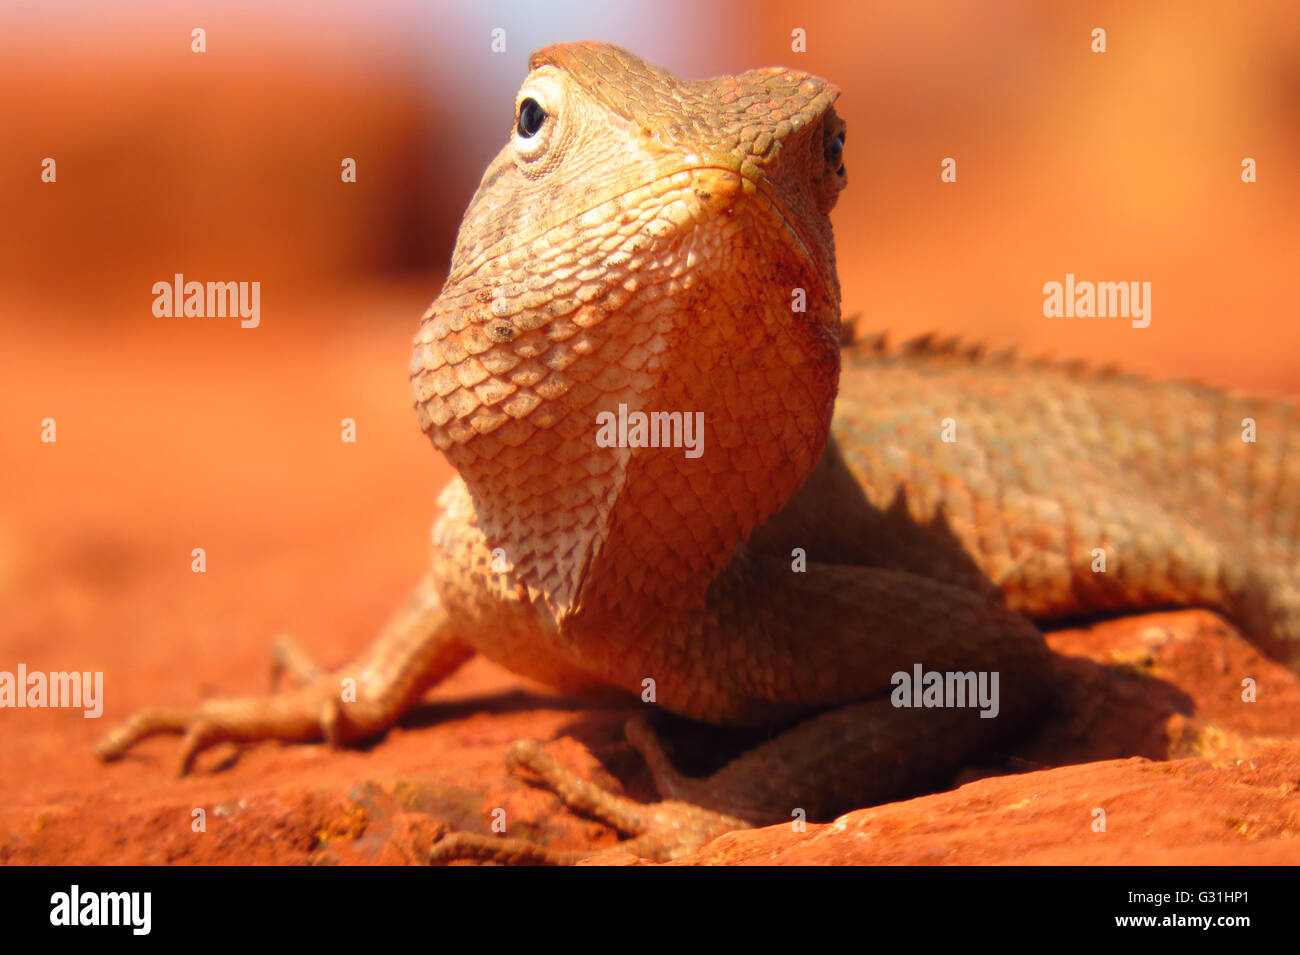 A closeup view of a chameleon found in the tropical forests of India. - Stock Image